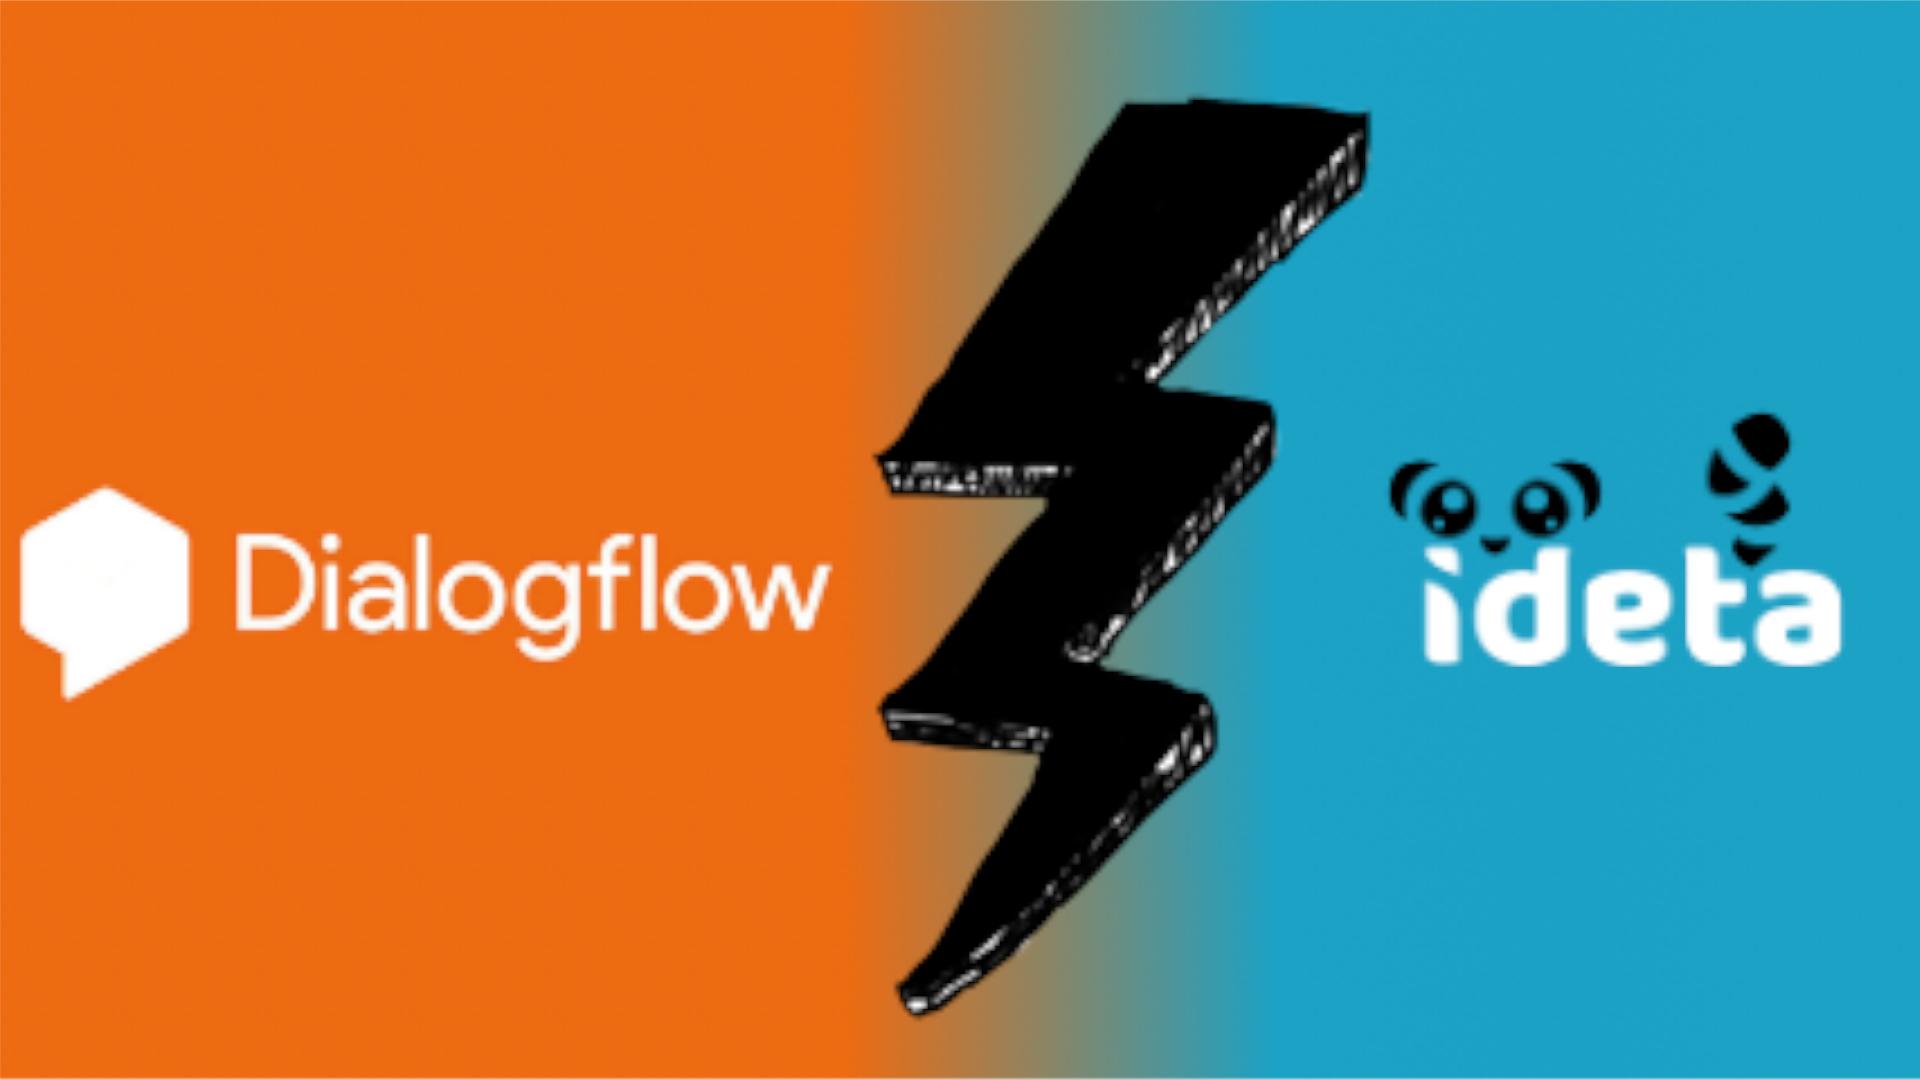 The three reasons to build your Dialogflow chatbot with Ideta.